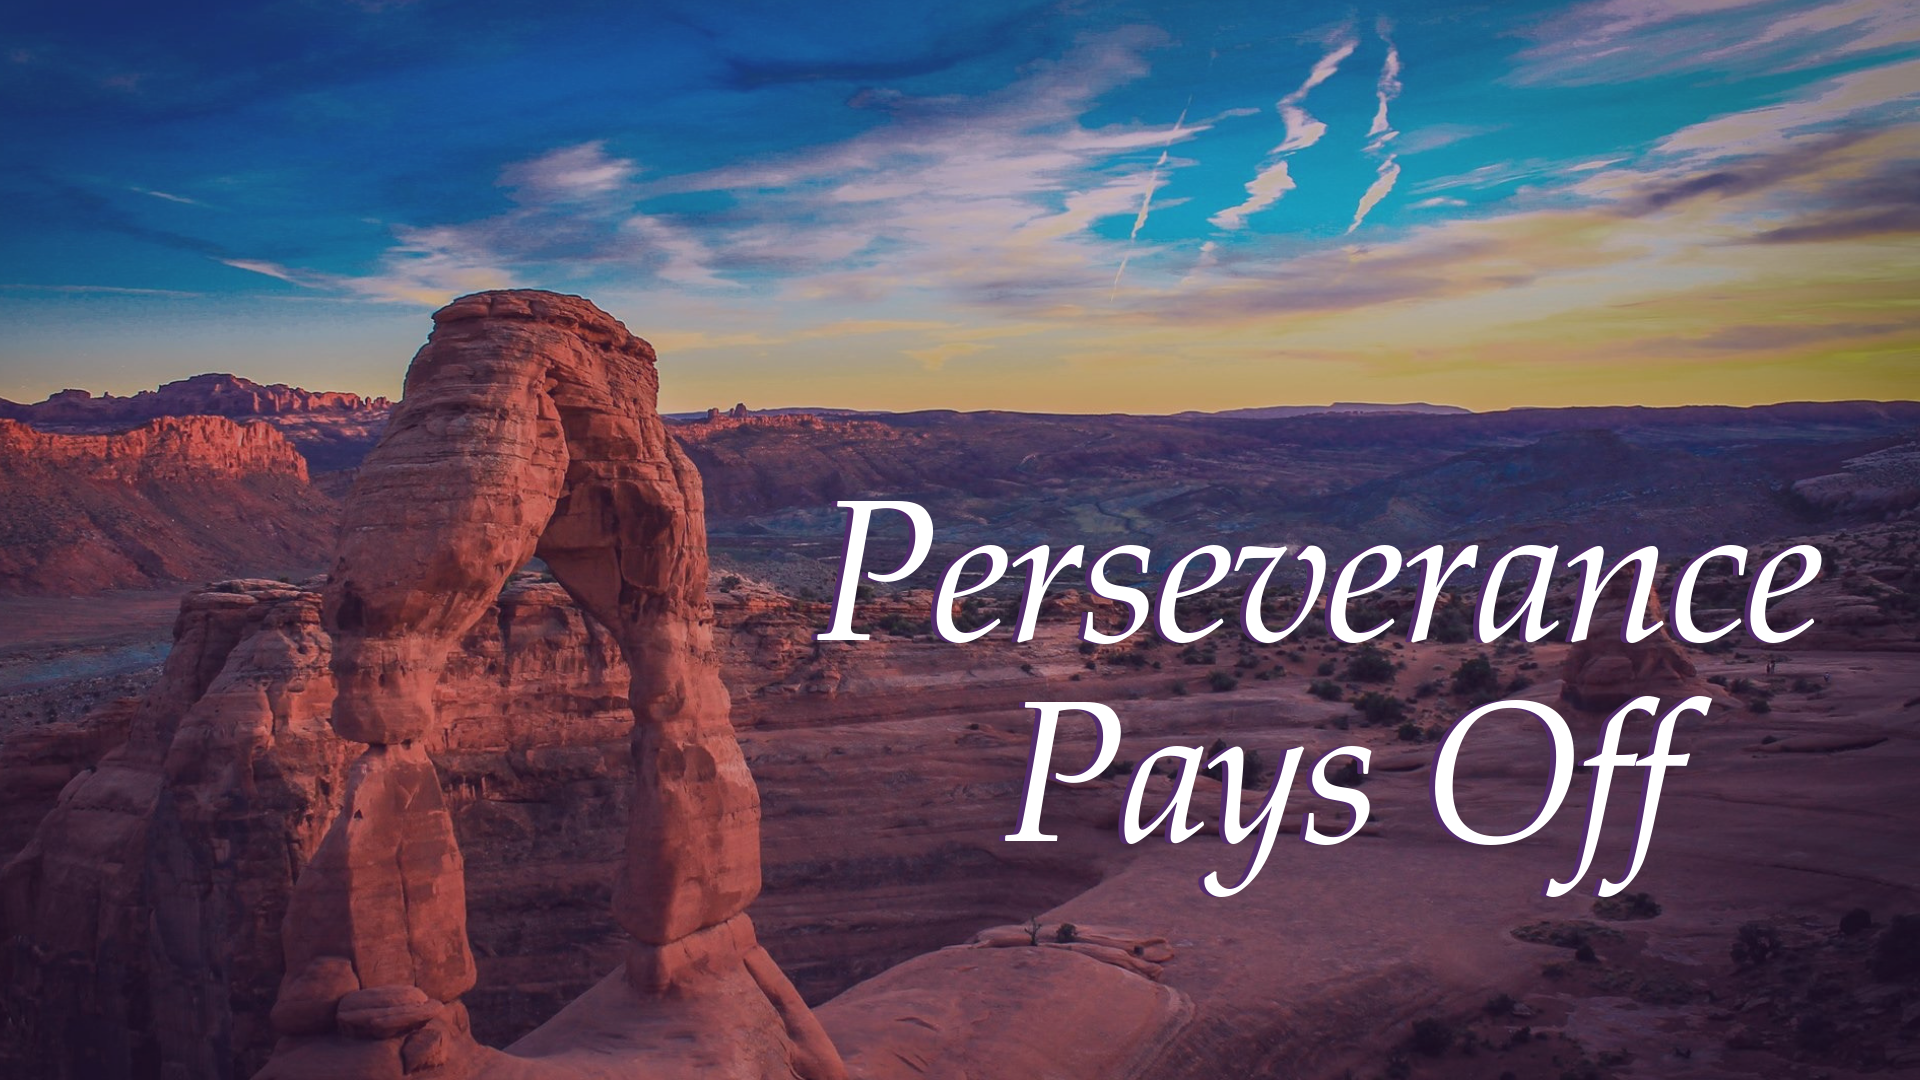 Perseverance Pays Off